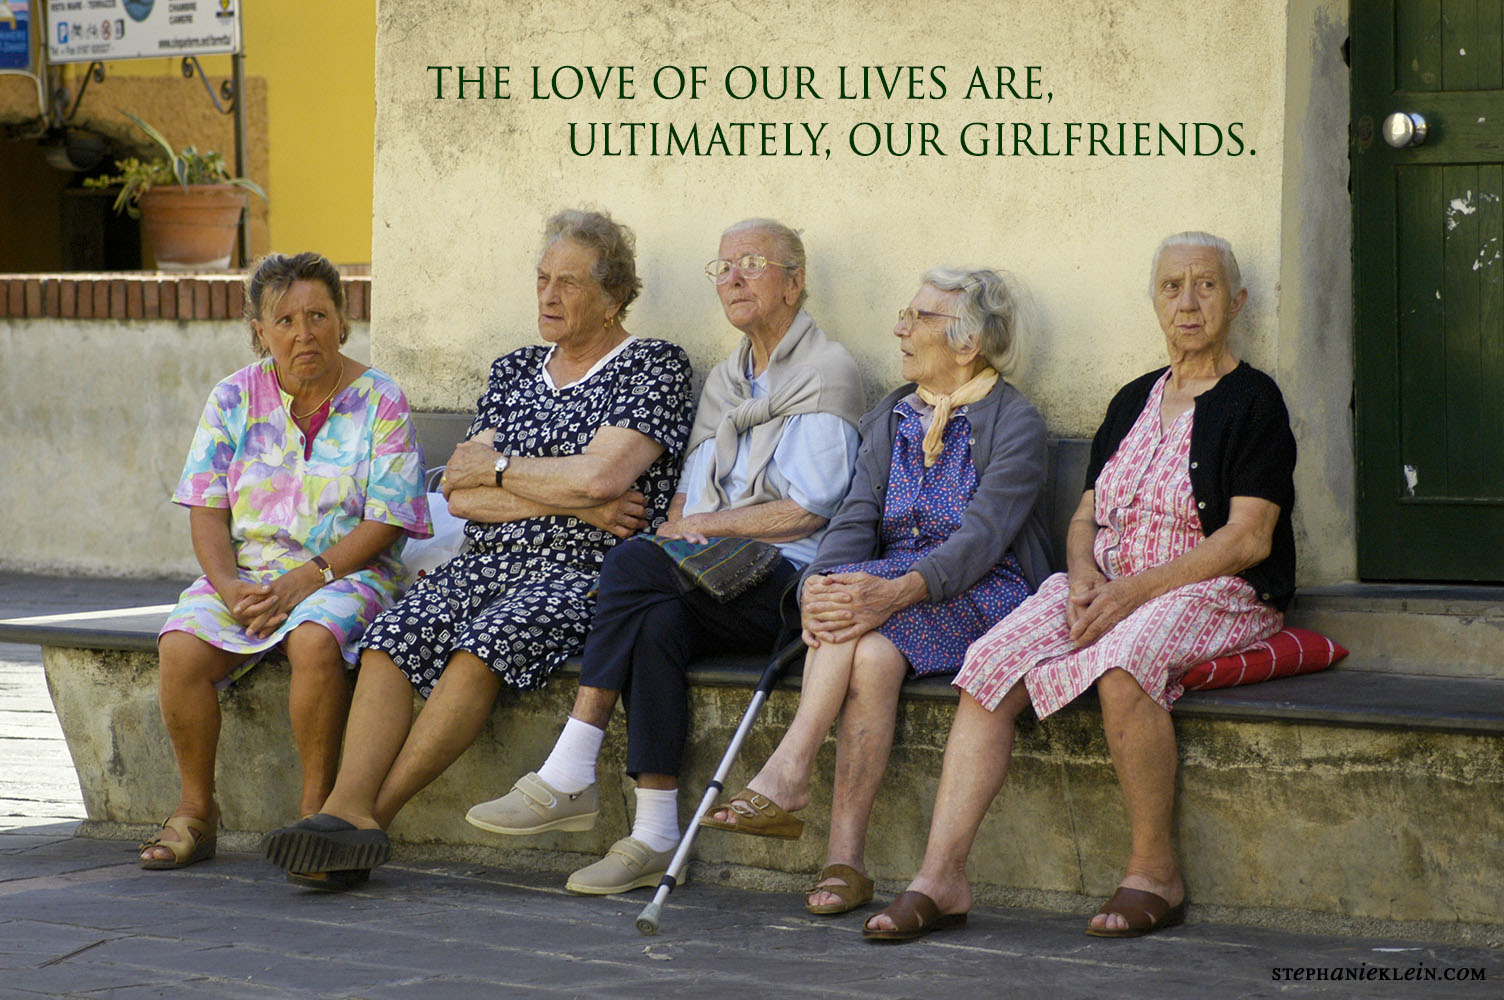 The love of our lives are, ultimately, our friendships. --Stephanie Klein